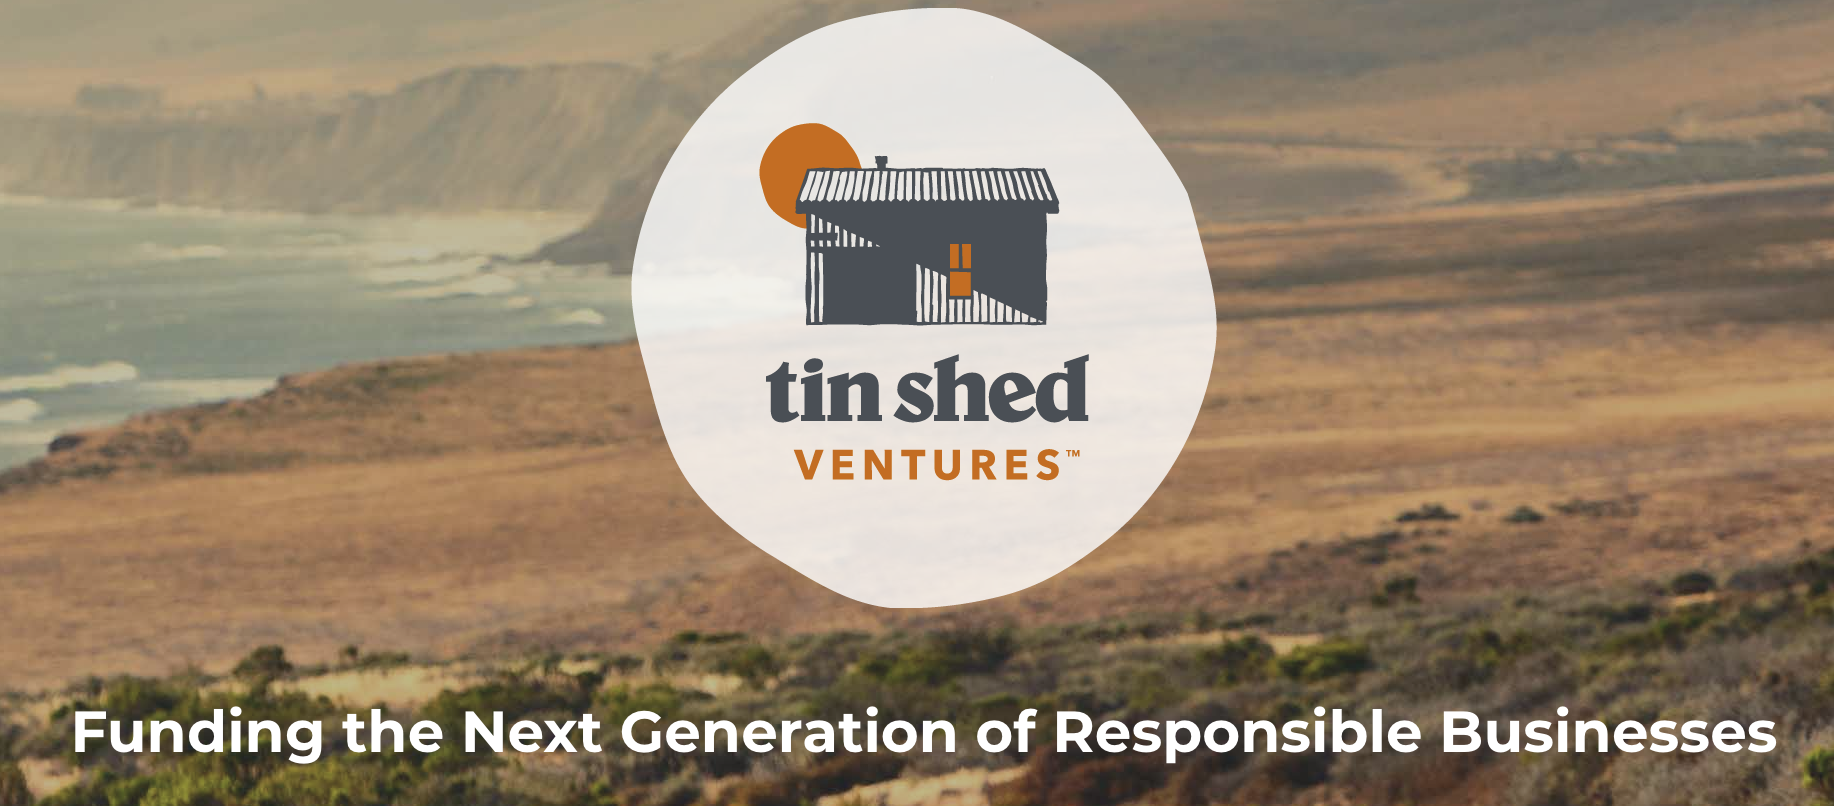 Tin Shed Ventures UNC Clean Tech Summit